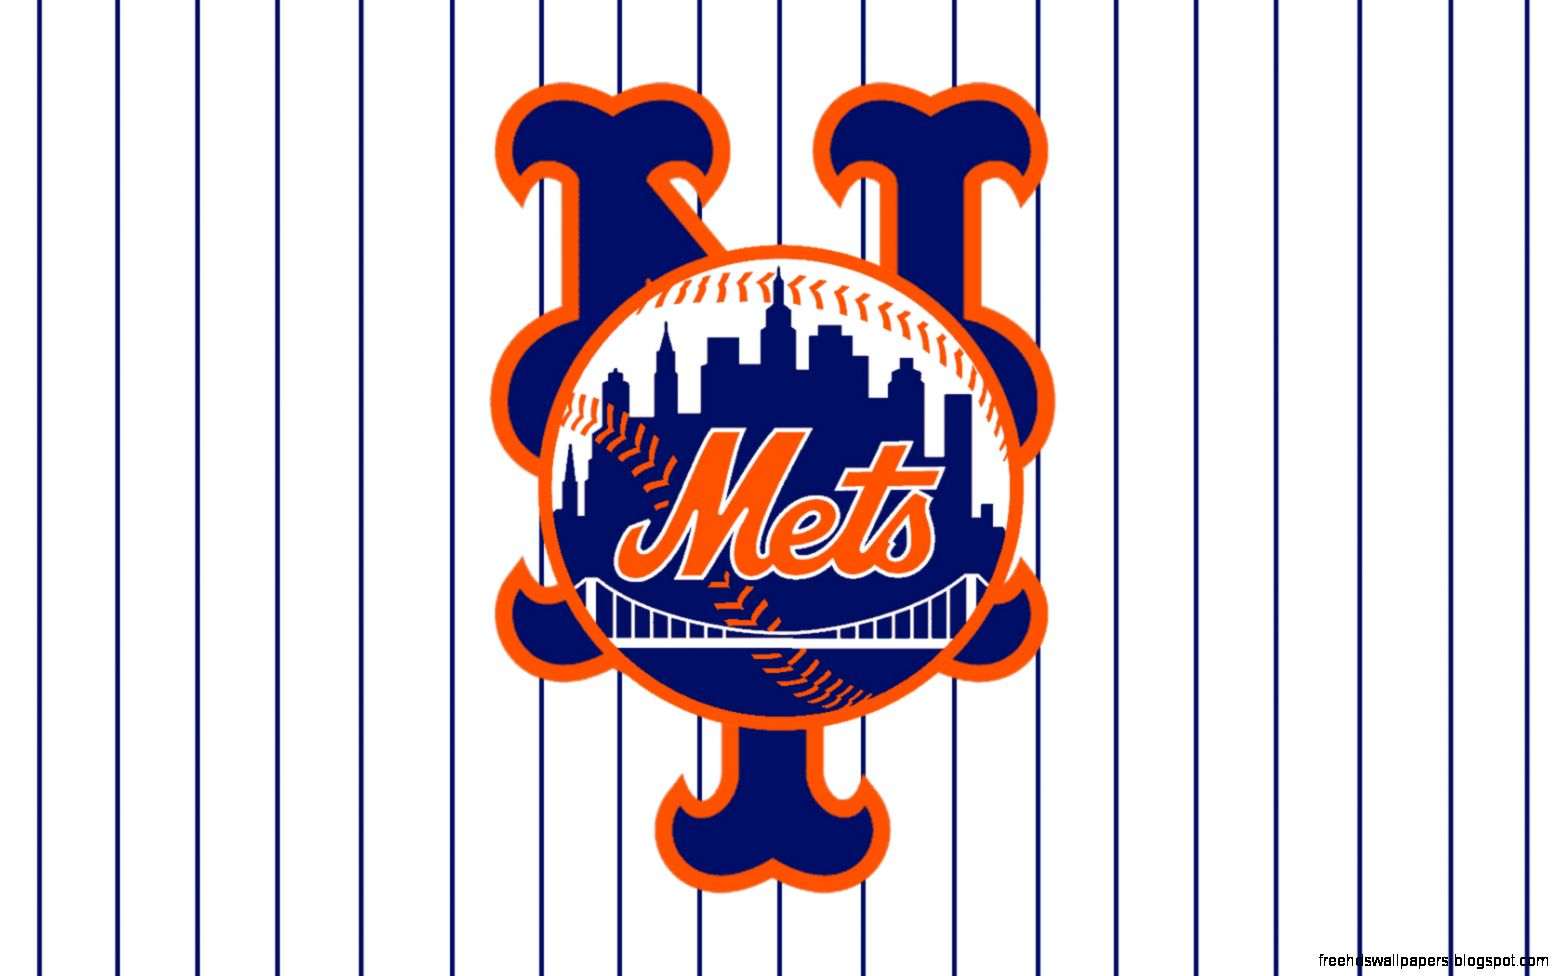 mets iphone wallpaper free hd wallpapers